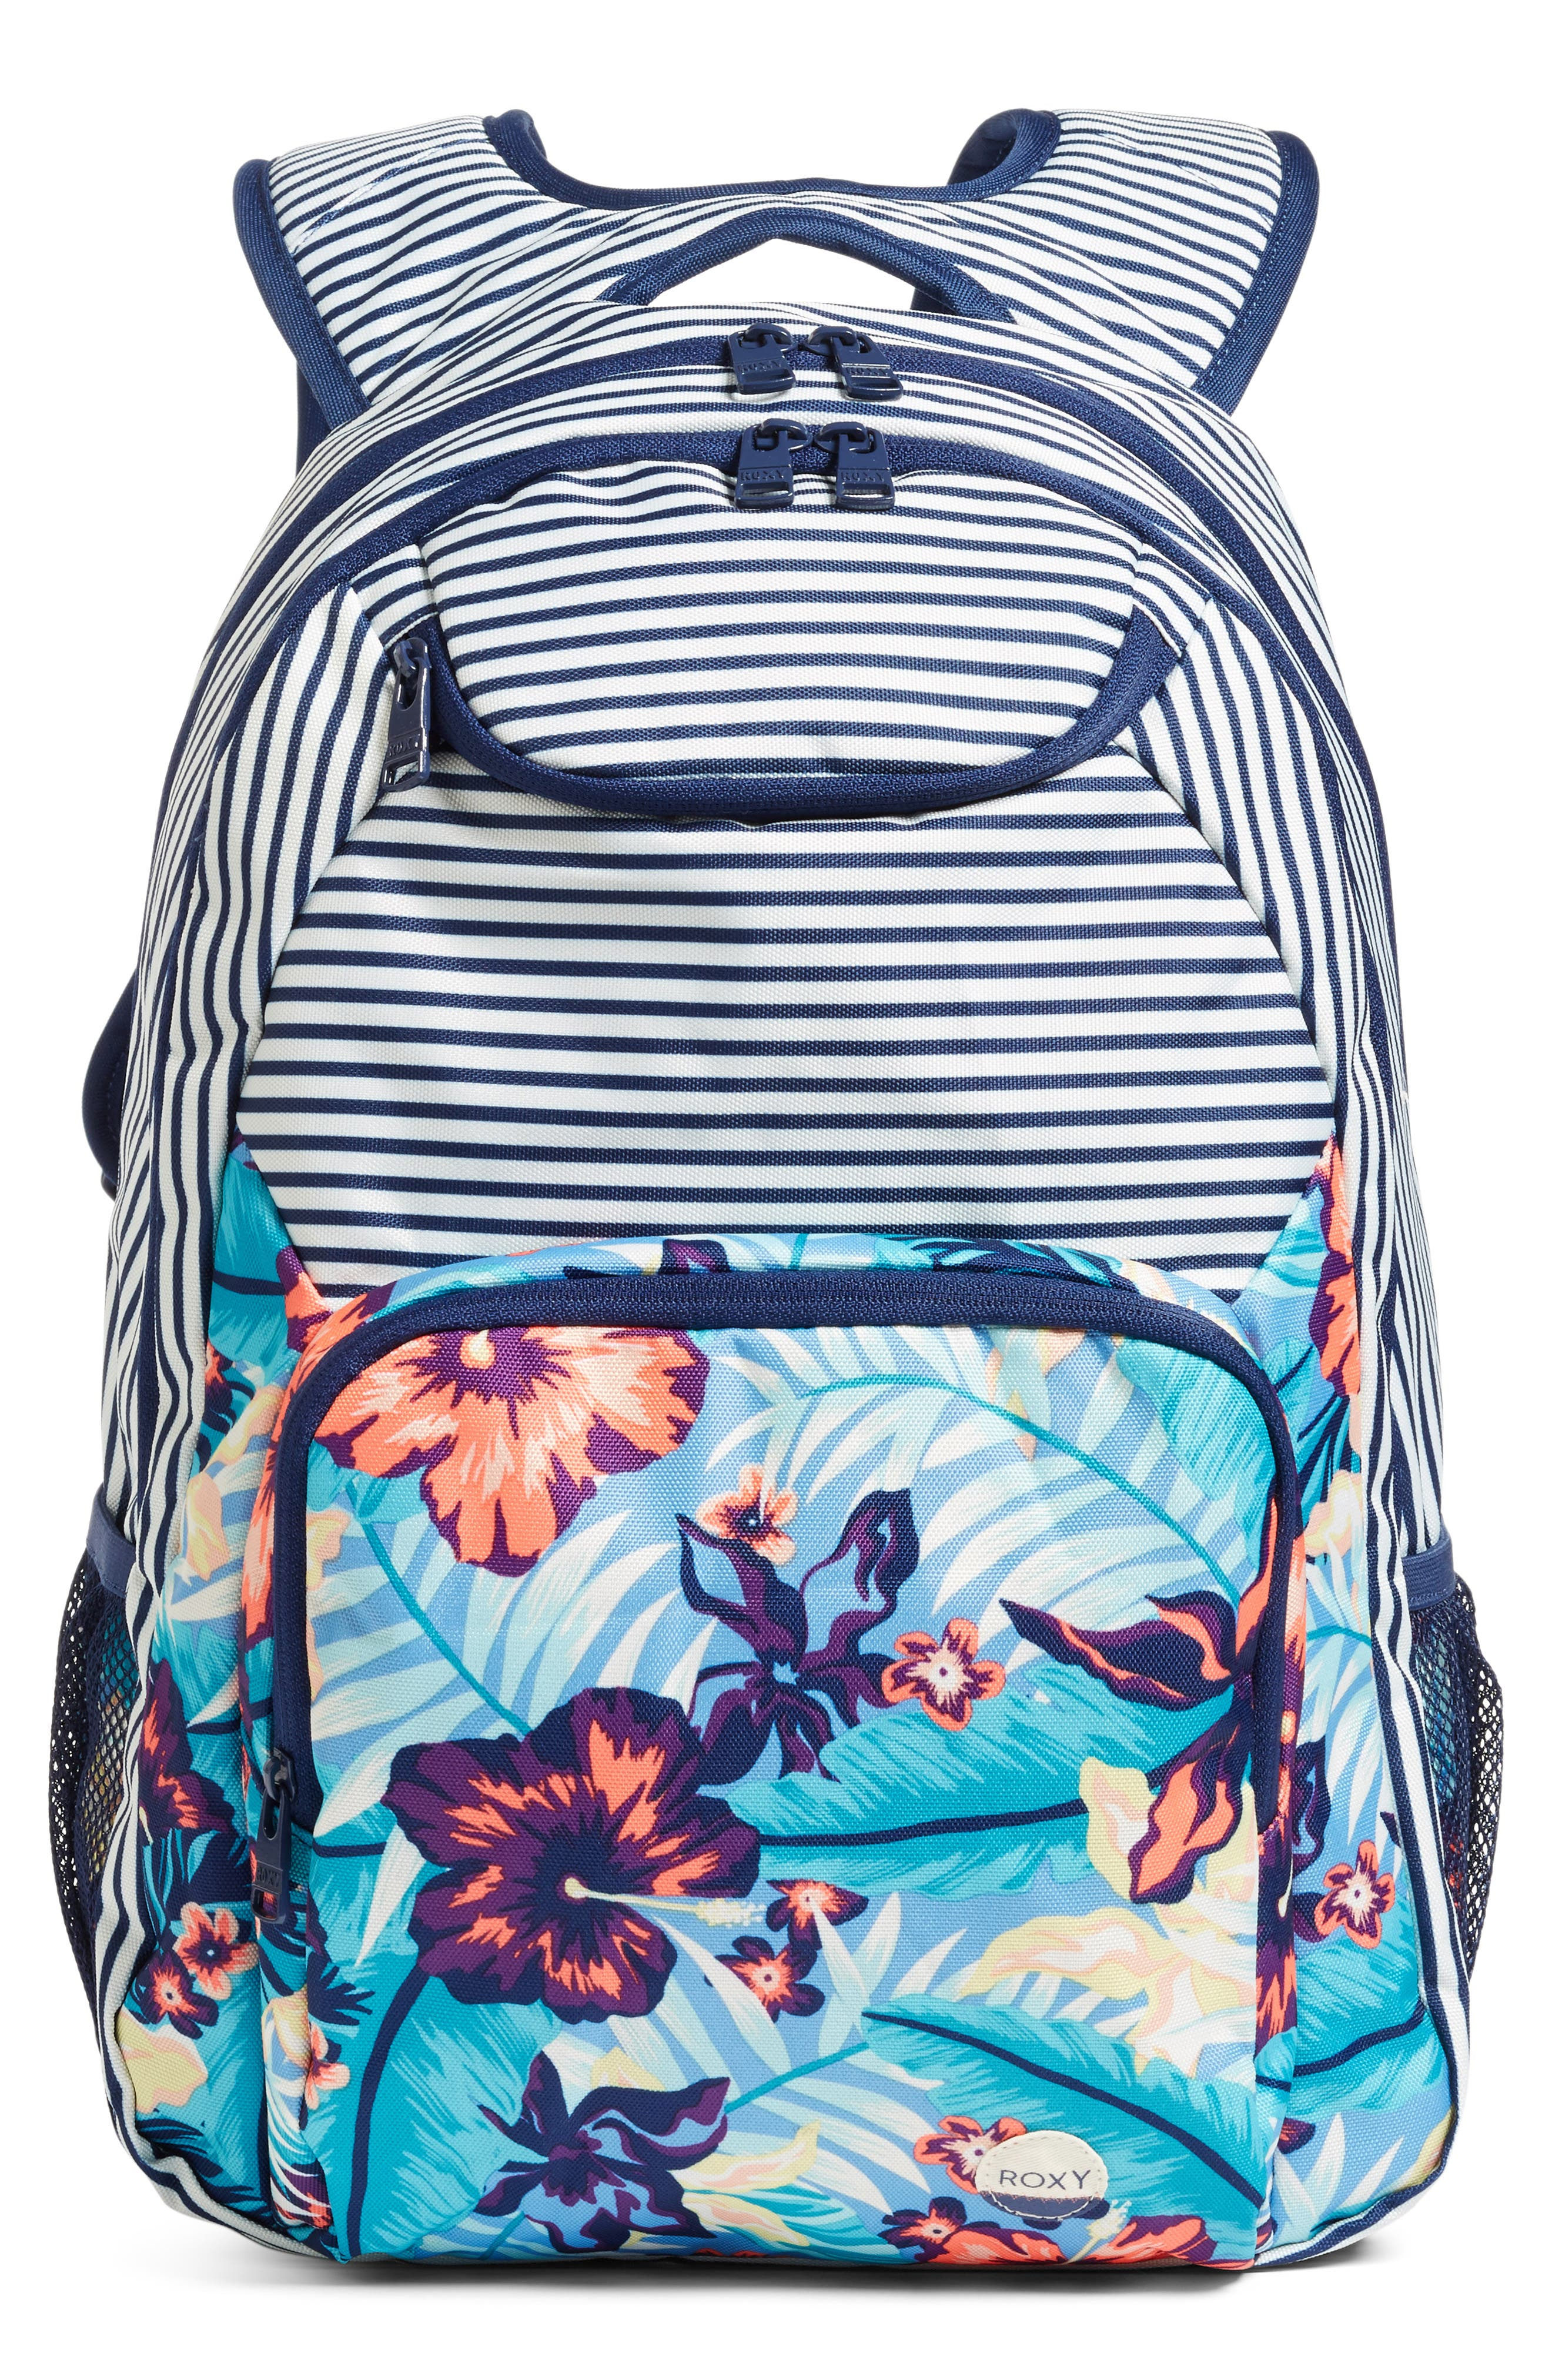 Alternate Image 1 Selected - Roxy Shadow Swell Backpack